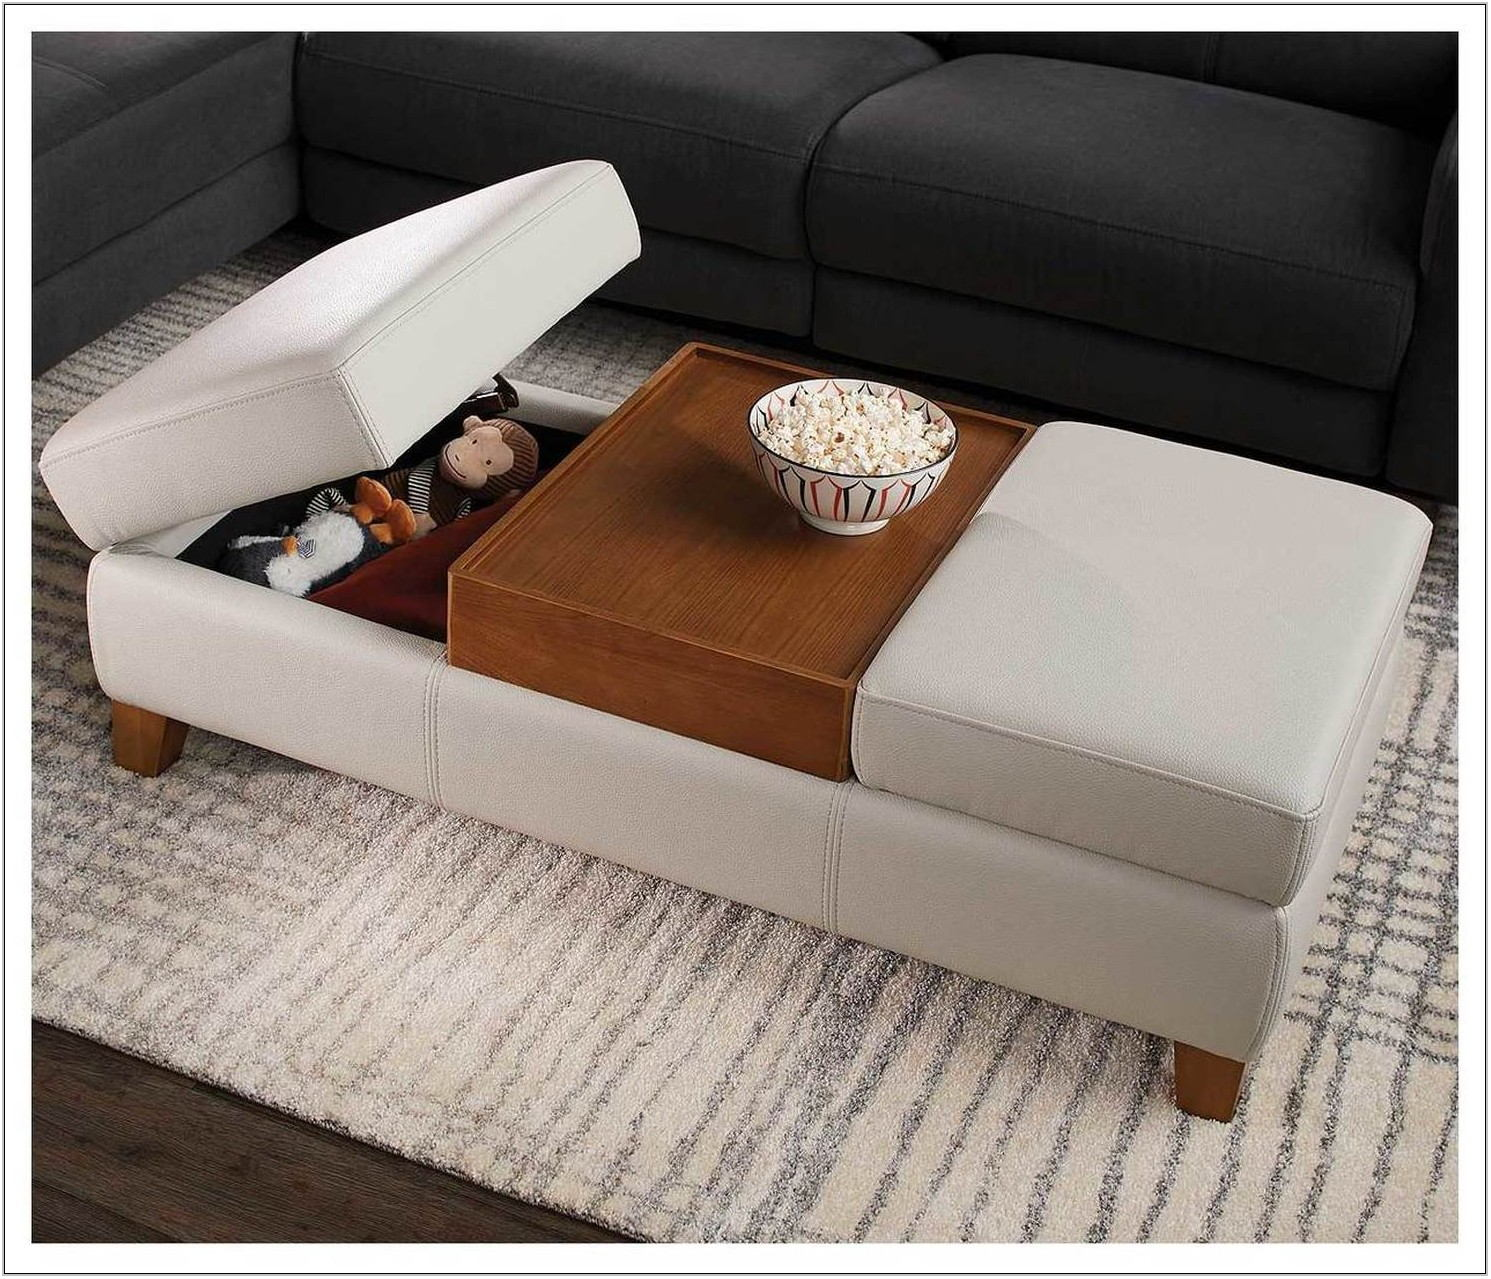 Living Room With Ottoman And Coffee Table